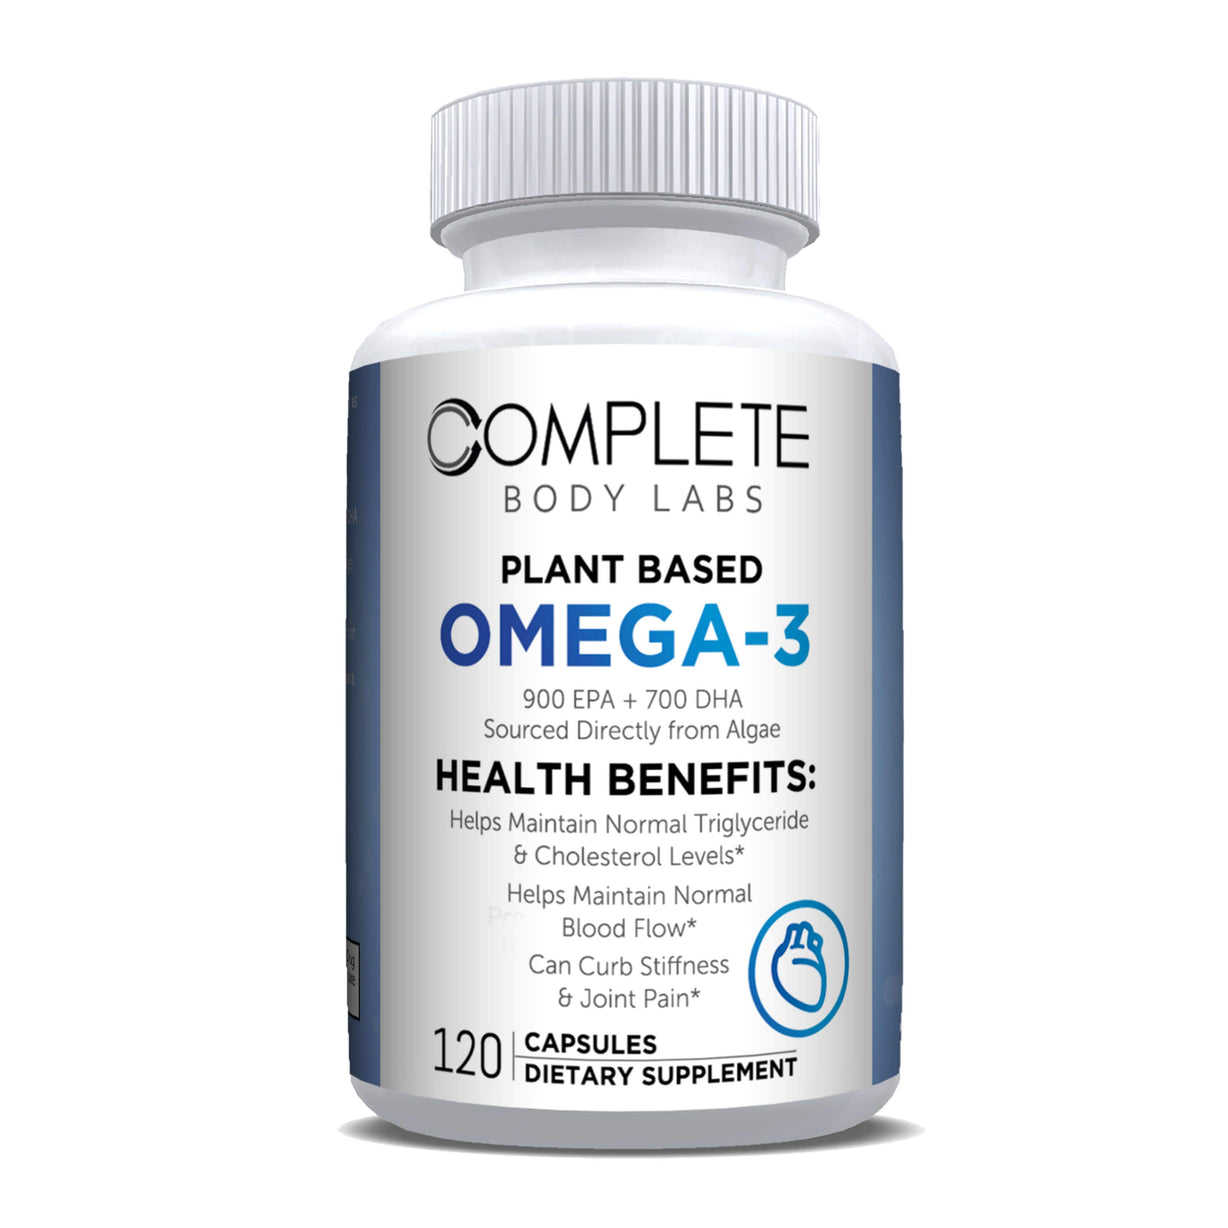 PLANT BASED OMEGA-3 (Encapsulated Algae Powder) | Complete Body Labs | Probiotics, Nootropics, Brain Supplements, Protein Bars, Workout Supplements, Health Supplements, Omega-3 & Essential Vitamins For Men & Women